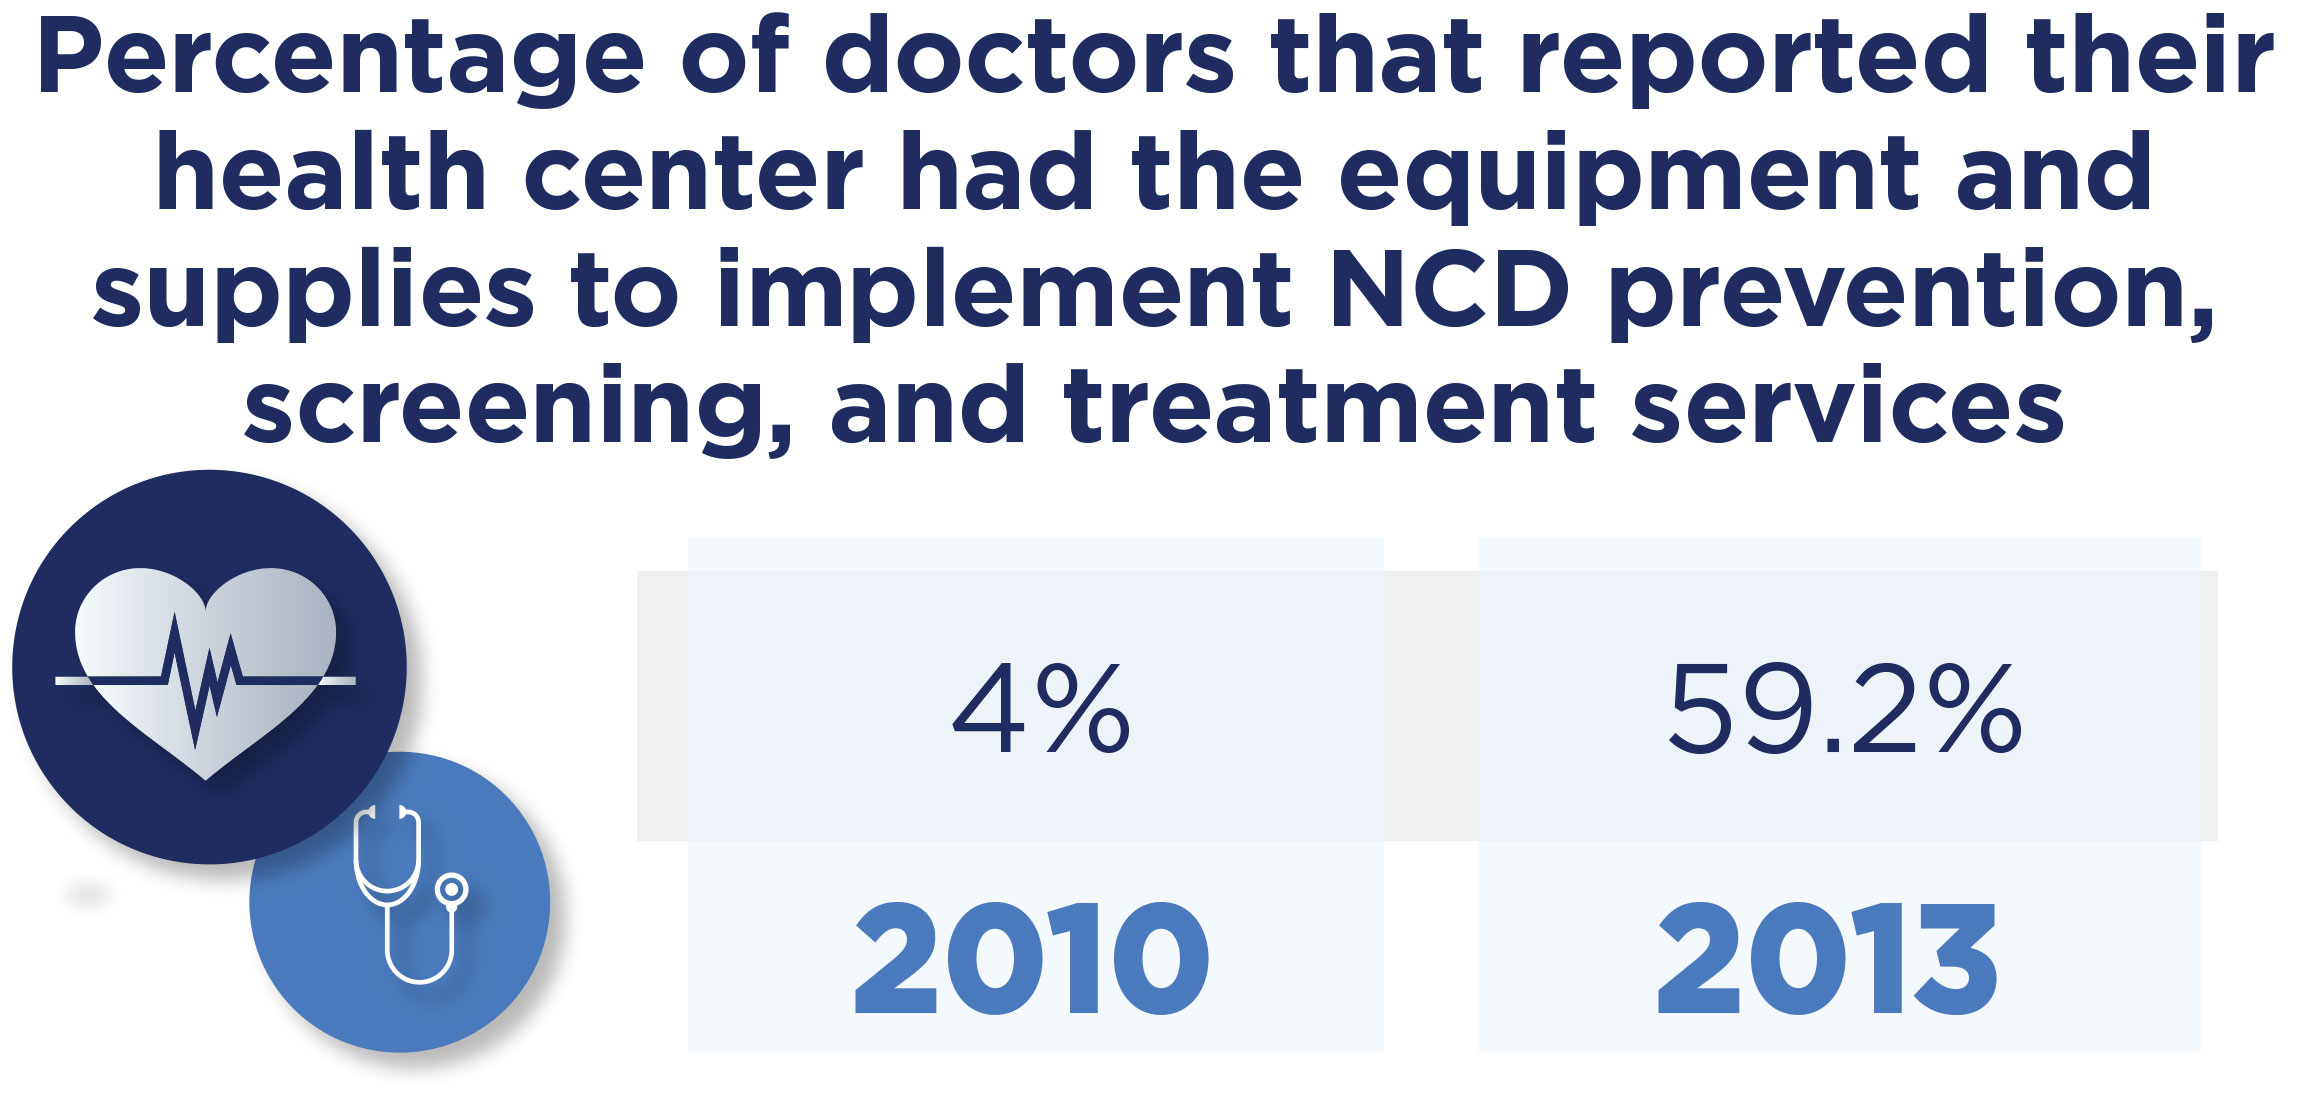 Percentage of doctors that reported their health center had the equipment and supplies to implement NCD prevention, screening, and treatment services.